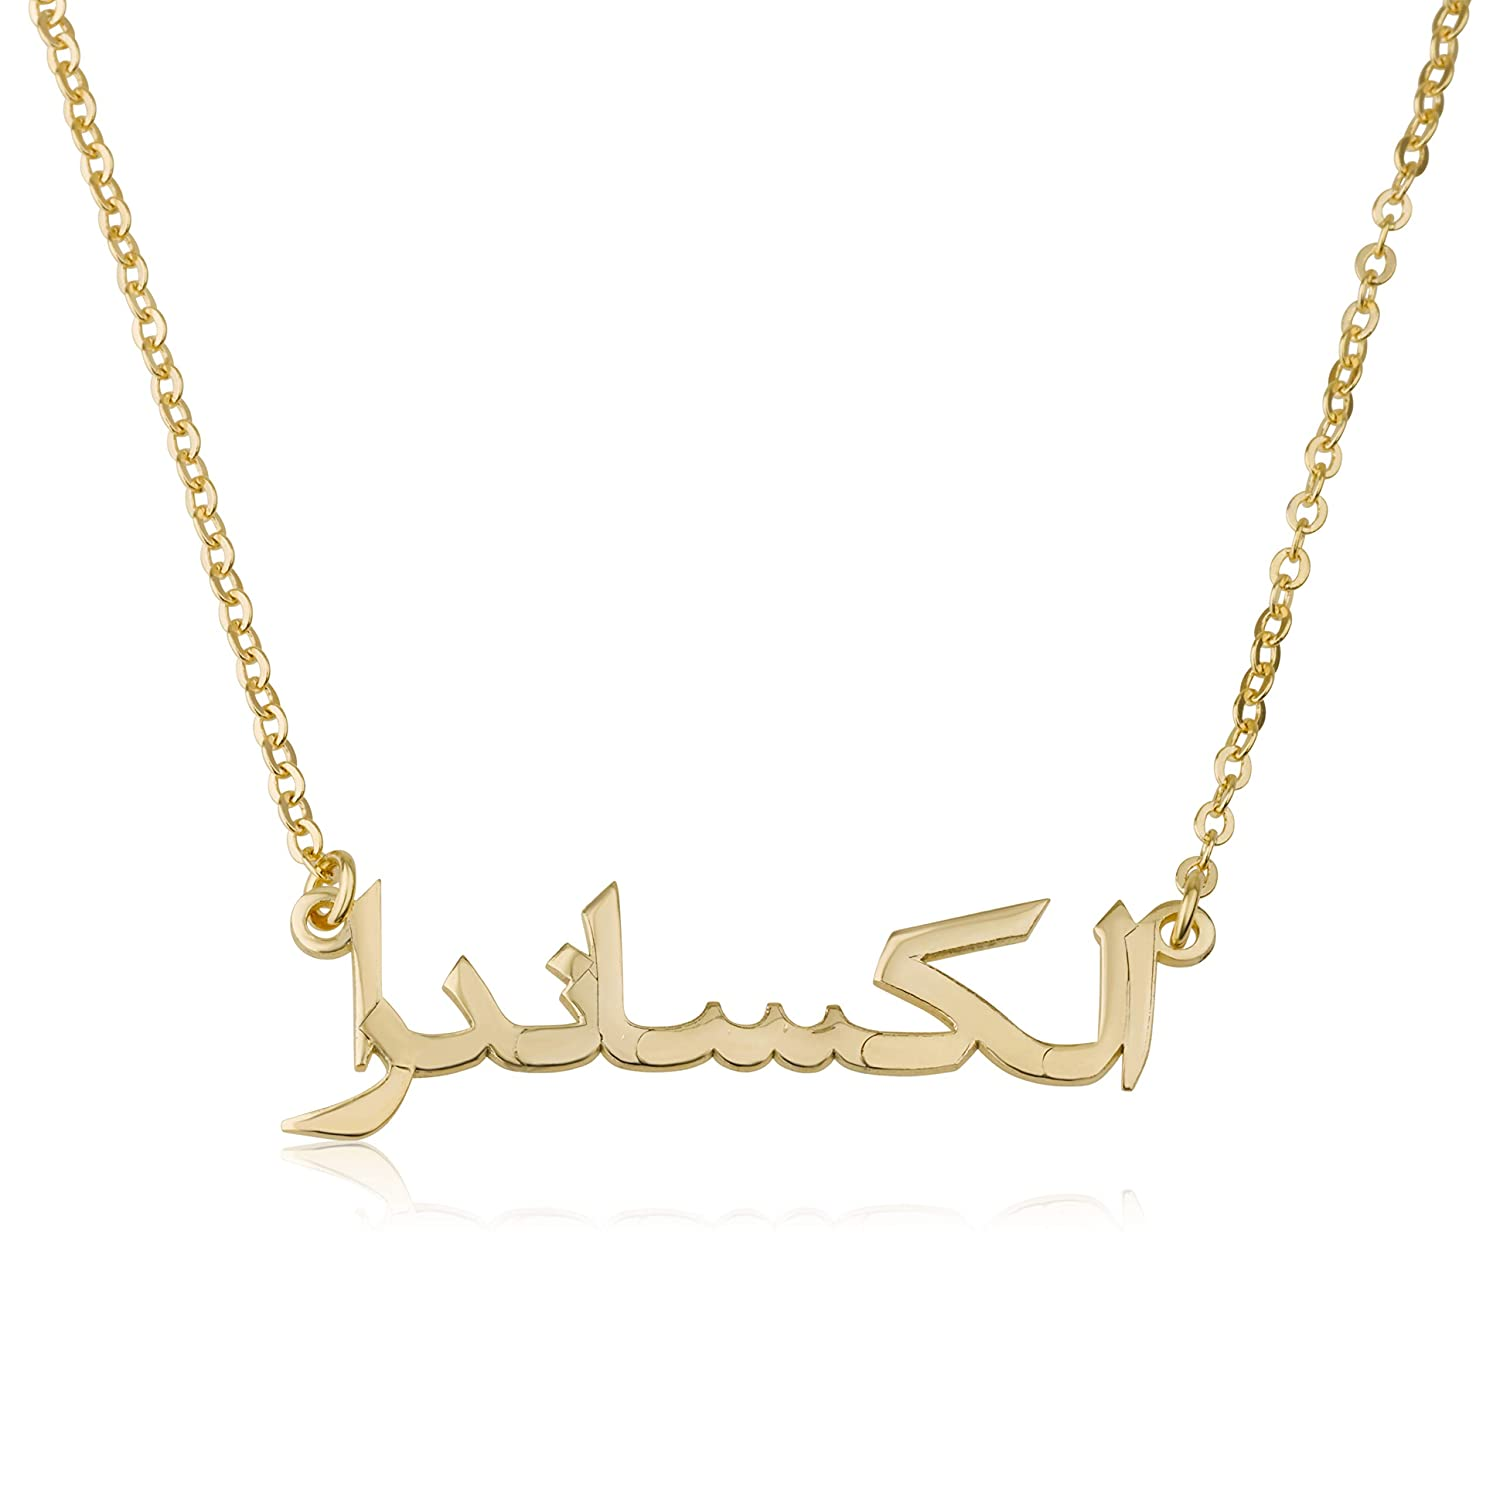 ade6b5f740880 Beleco Jewelry Arabic Name Necklace Personalized Any Name Sterling Silver  Or Gold/Rose Plated 18k